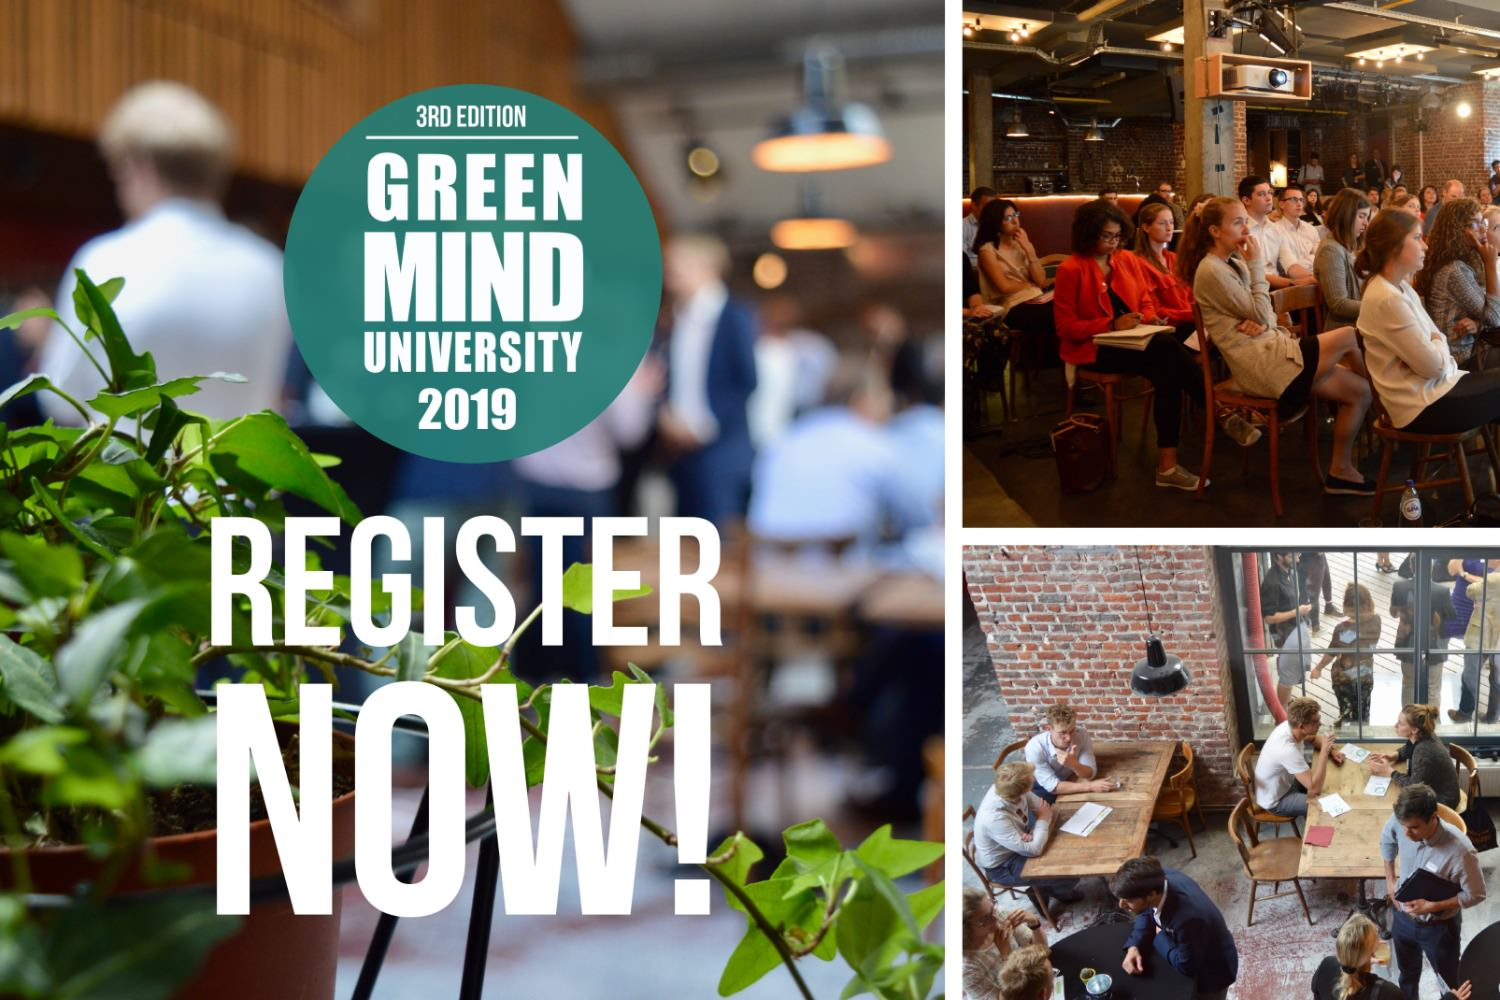 The Green Mind 2019